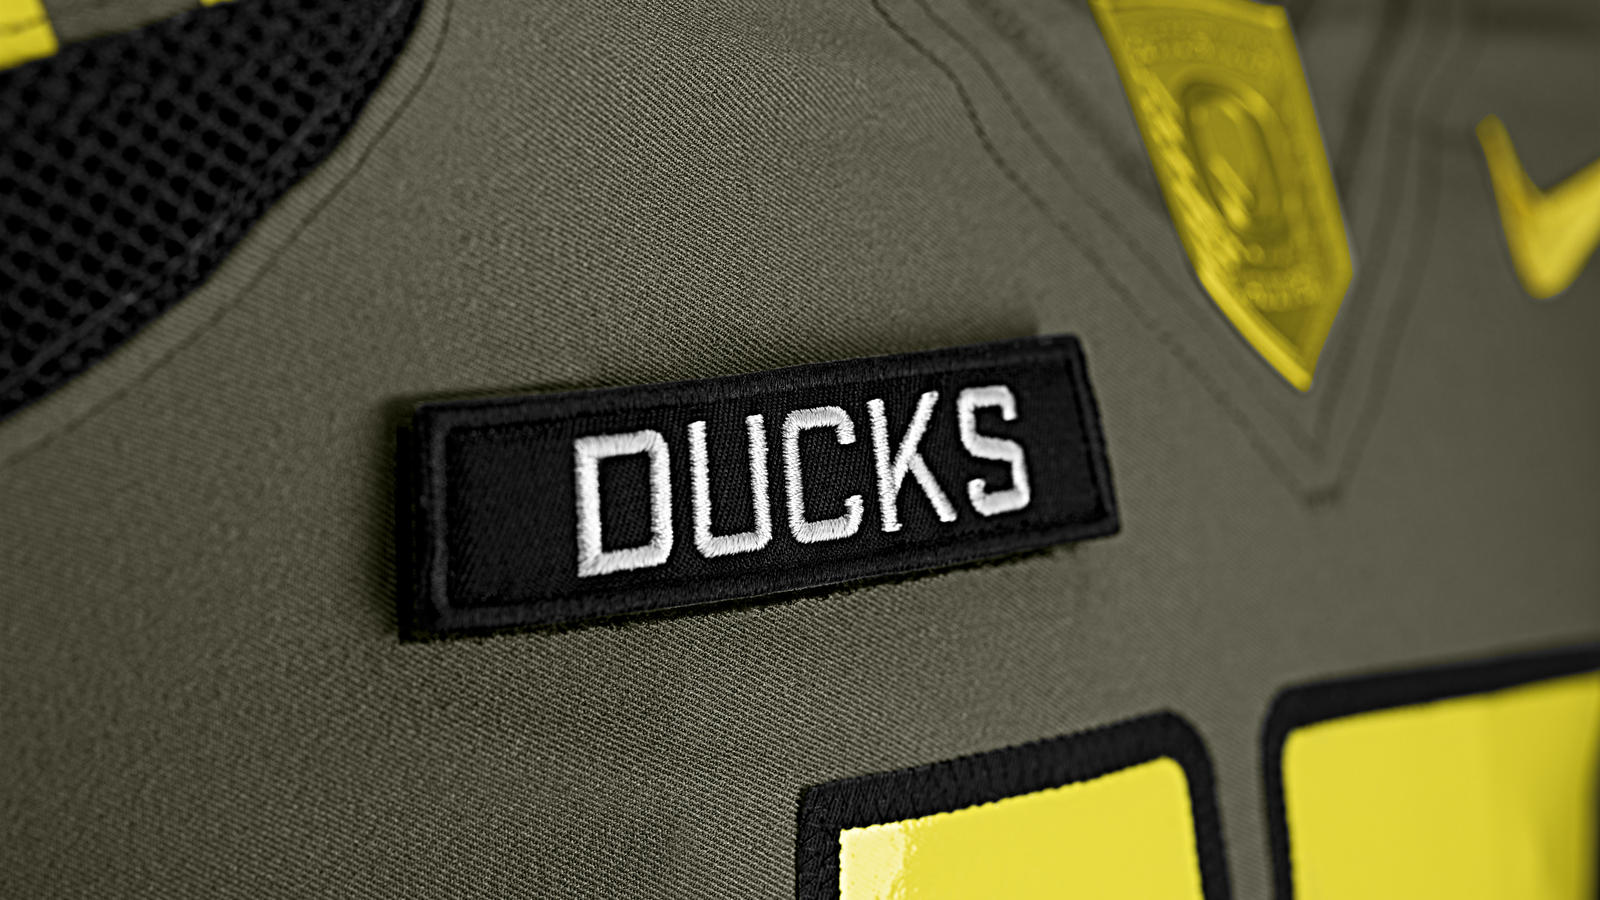 nike-football-uniform-uofo-away-ducks